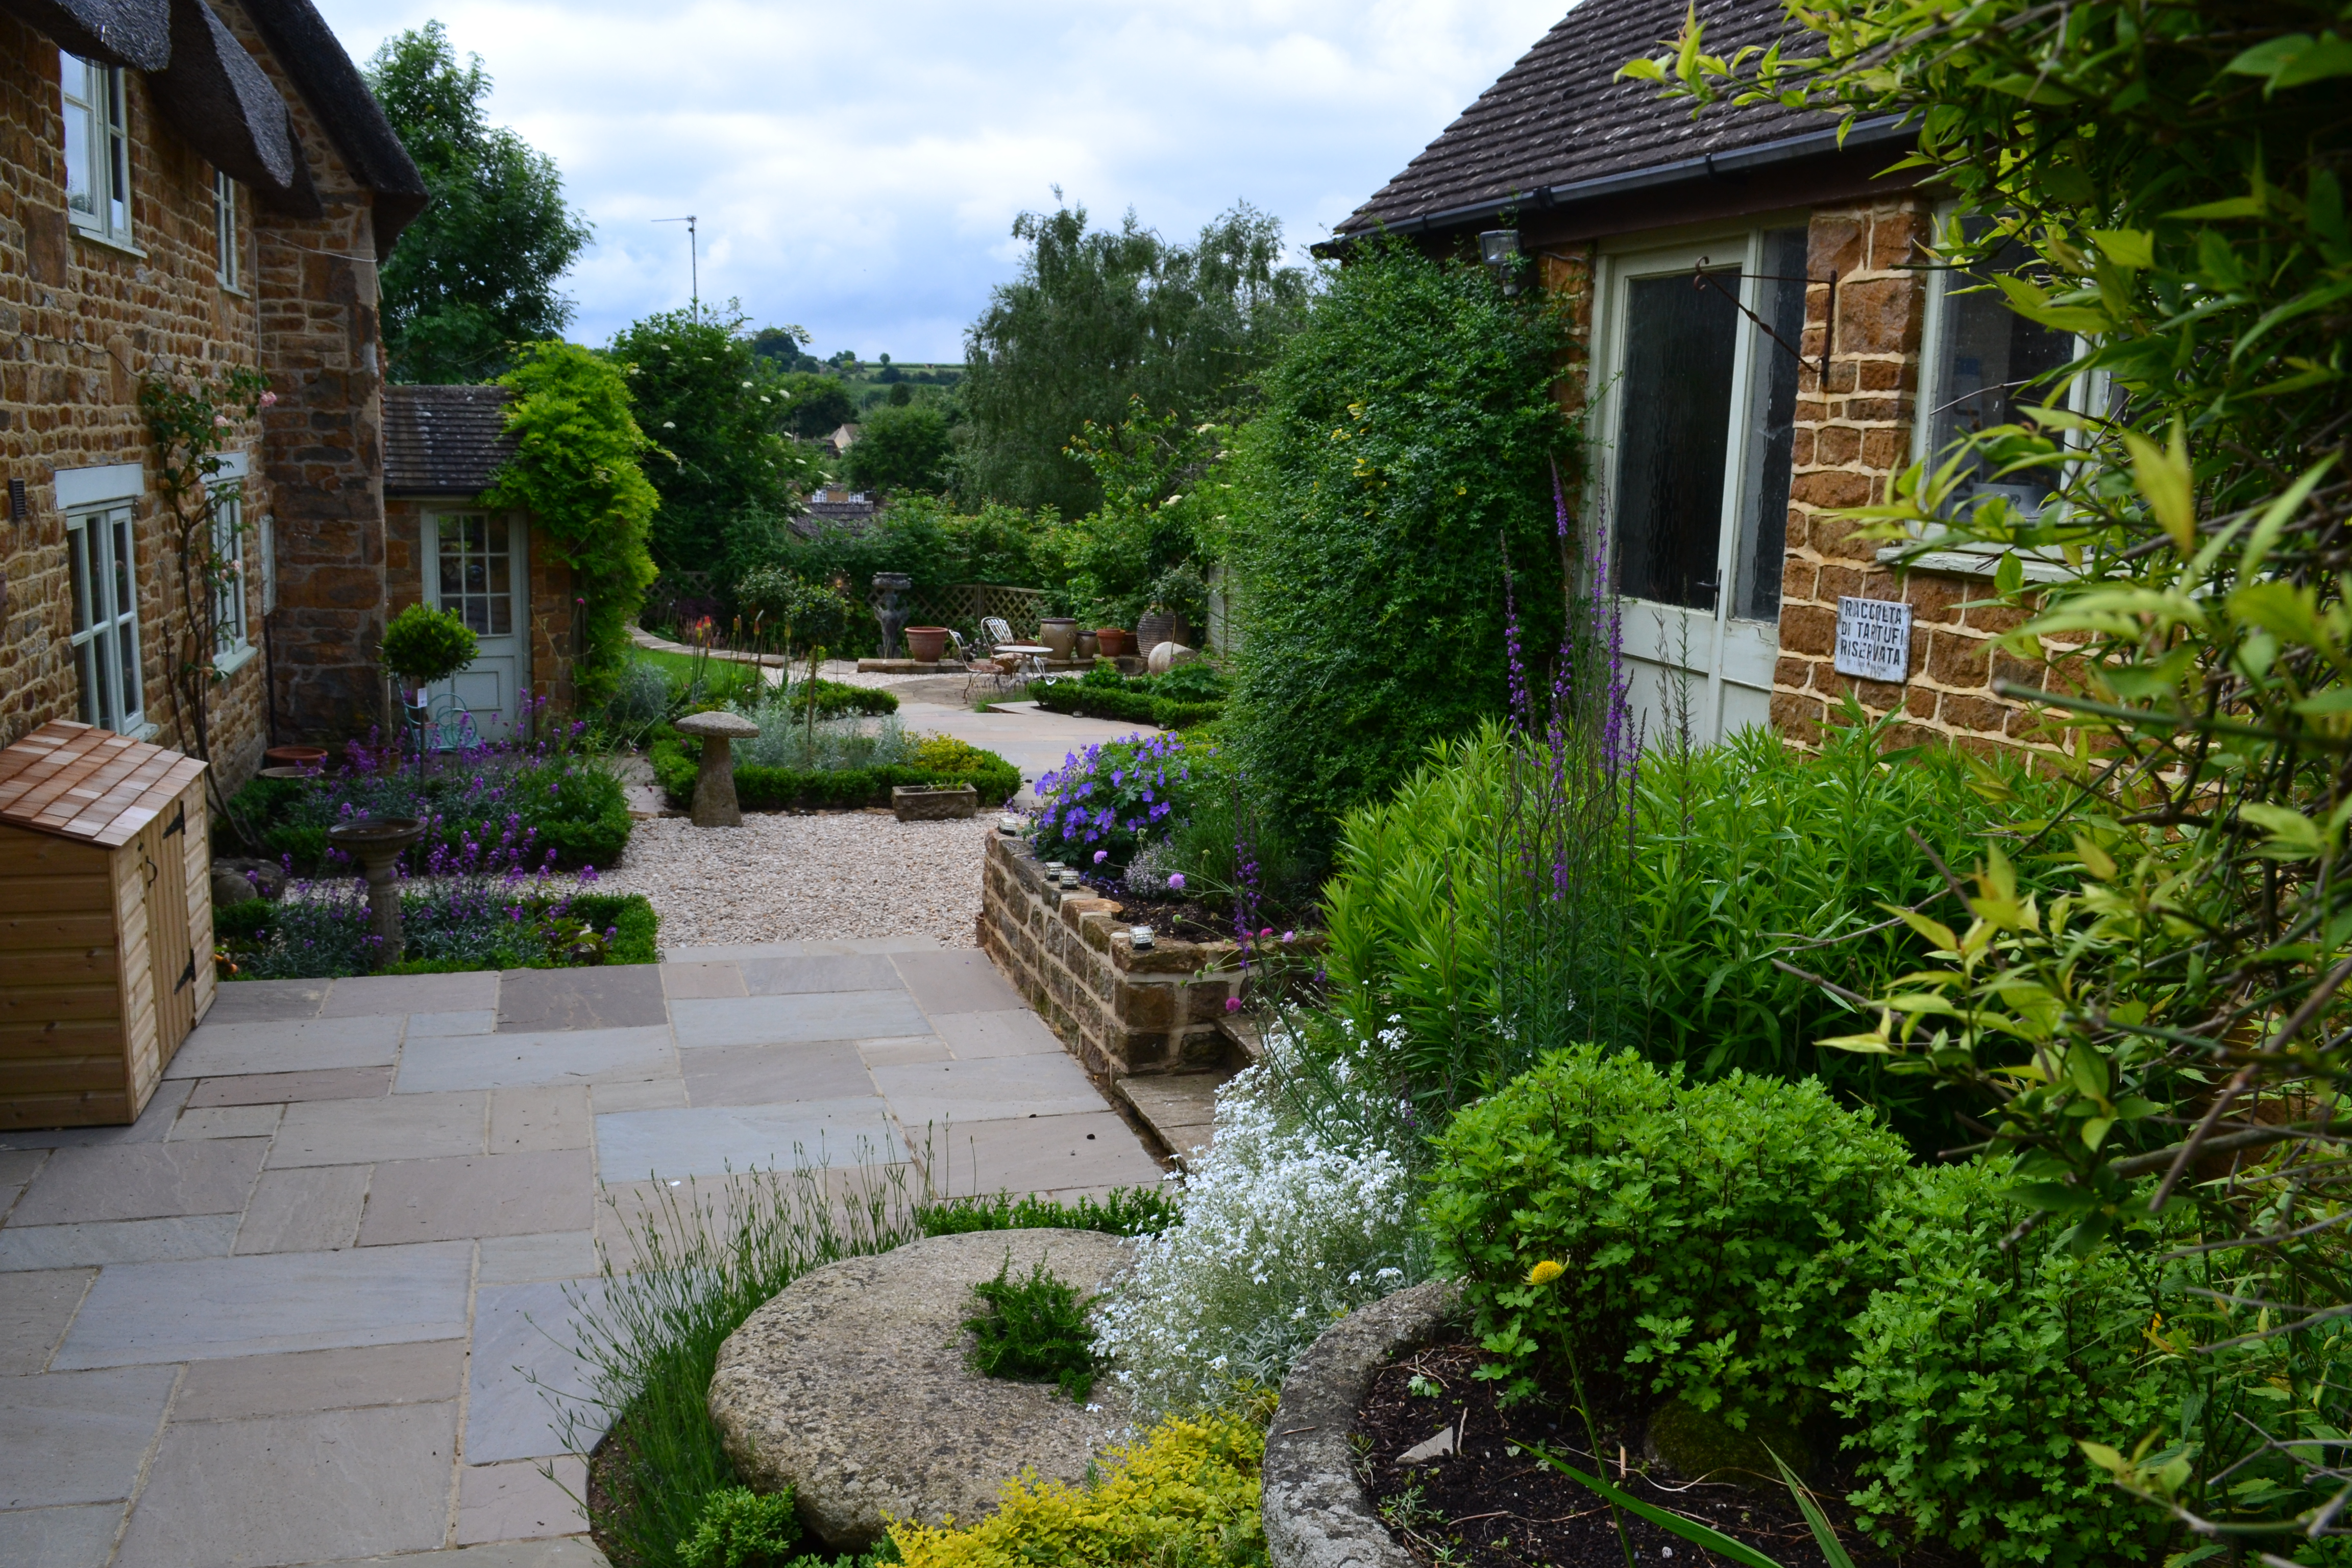 Sheena Marsh Author at Oxford Garden Design